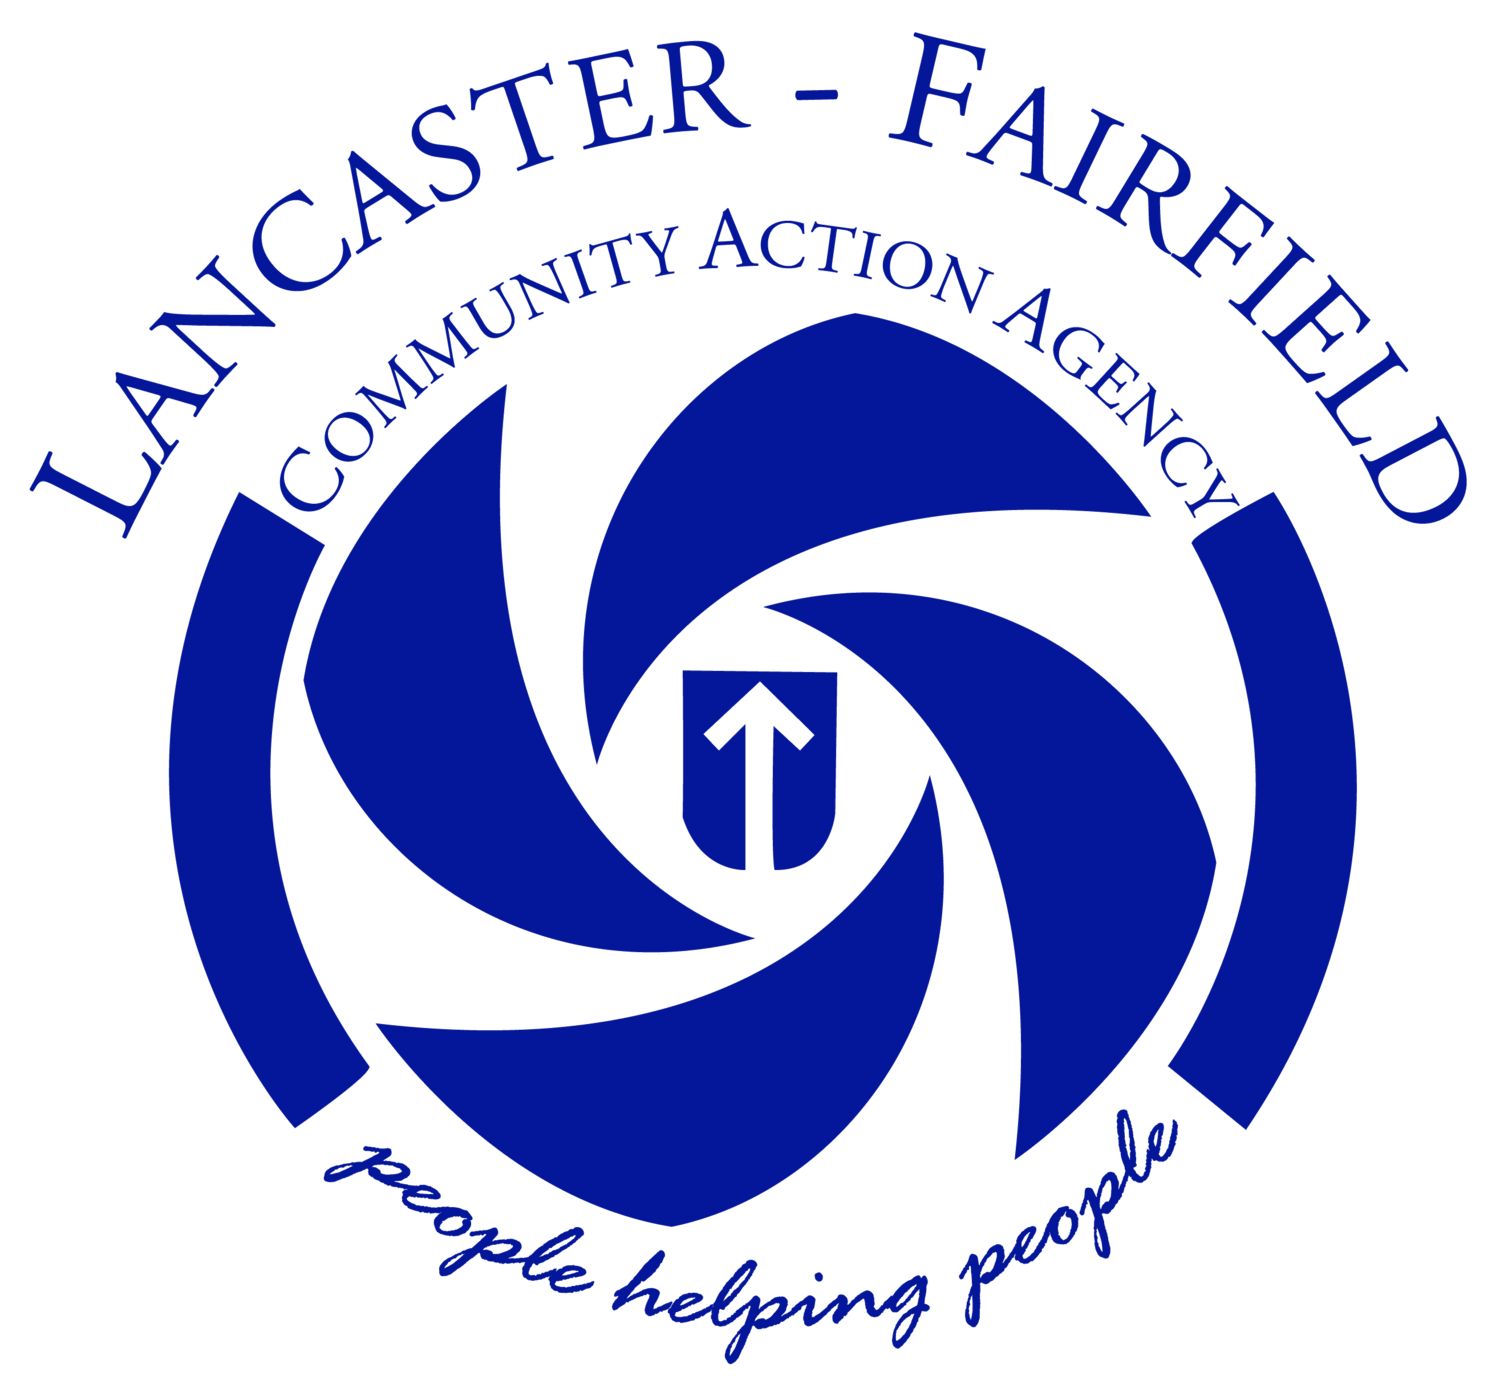 Lancaster Fairfield Community Action Agency